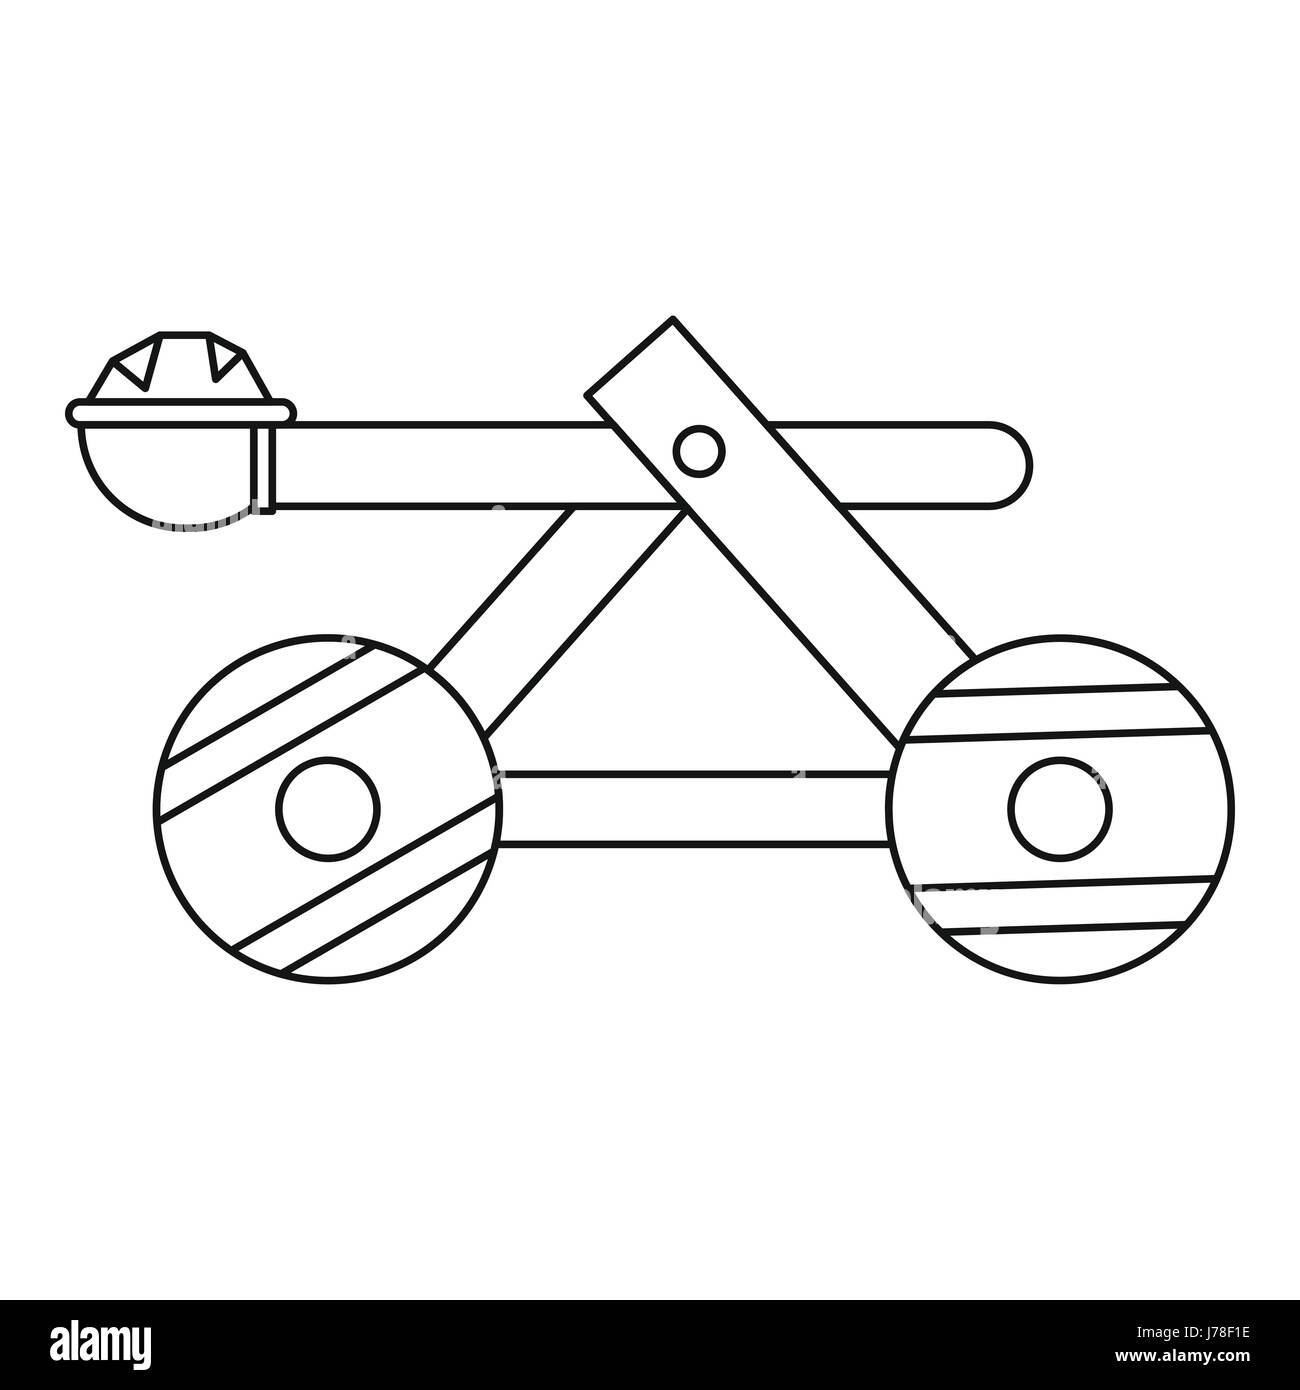 Trebuchet Black And White Stock Photos Images Alamy Catapult Motion Diagram Onager Wooden Icon In Outline Style On A Background Vector Illustration Image